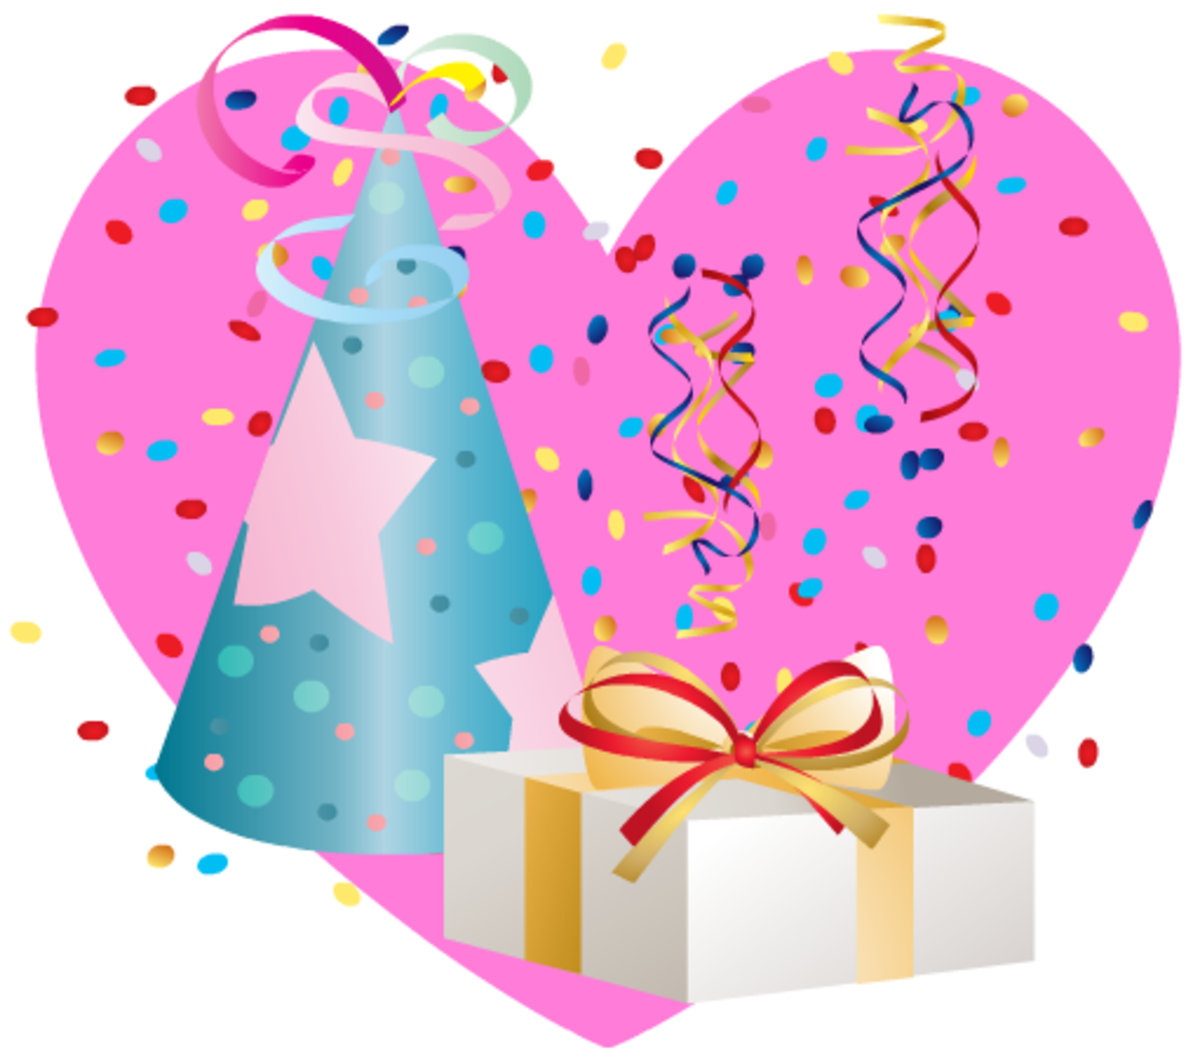 Pink heart with birthday hat and present clipart